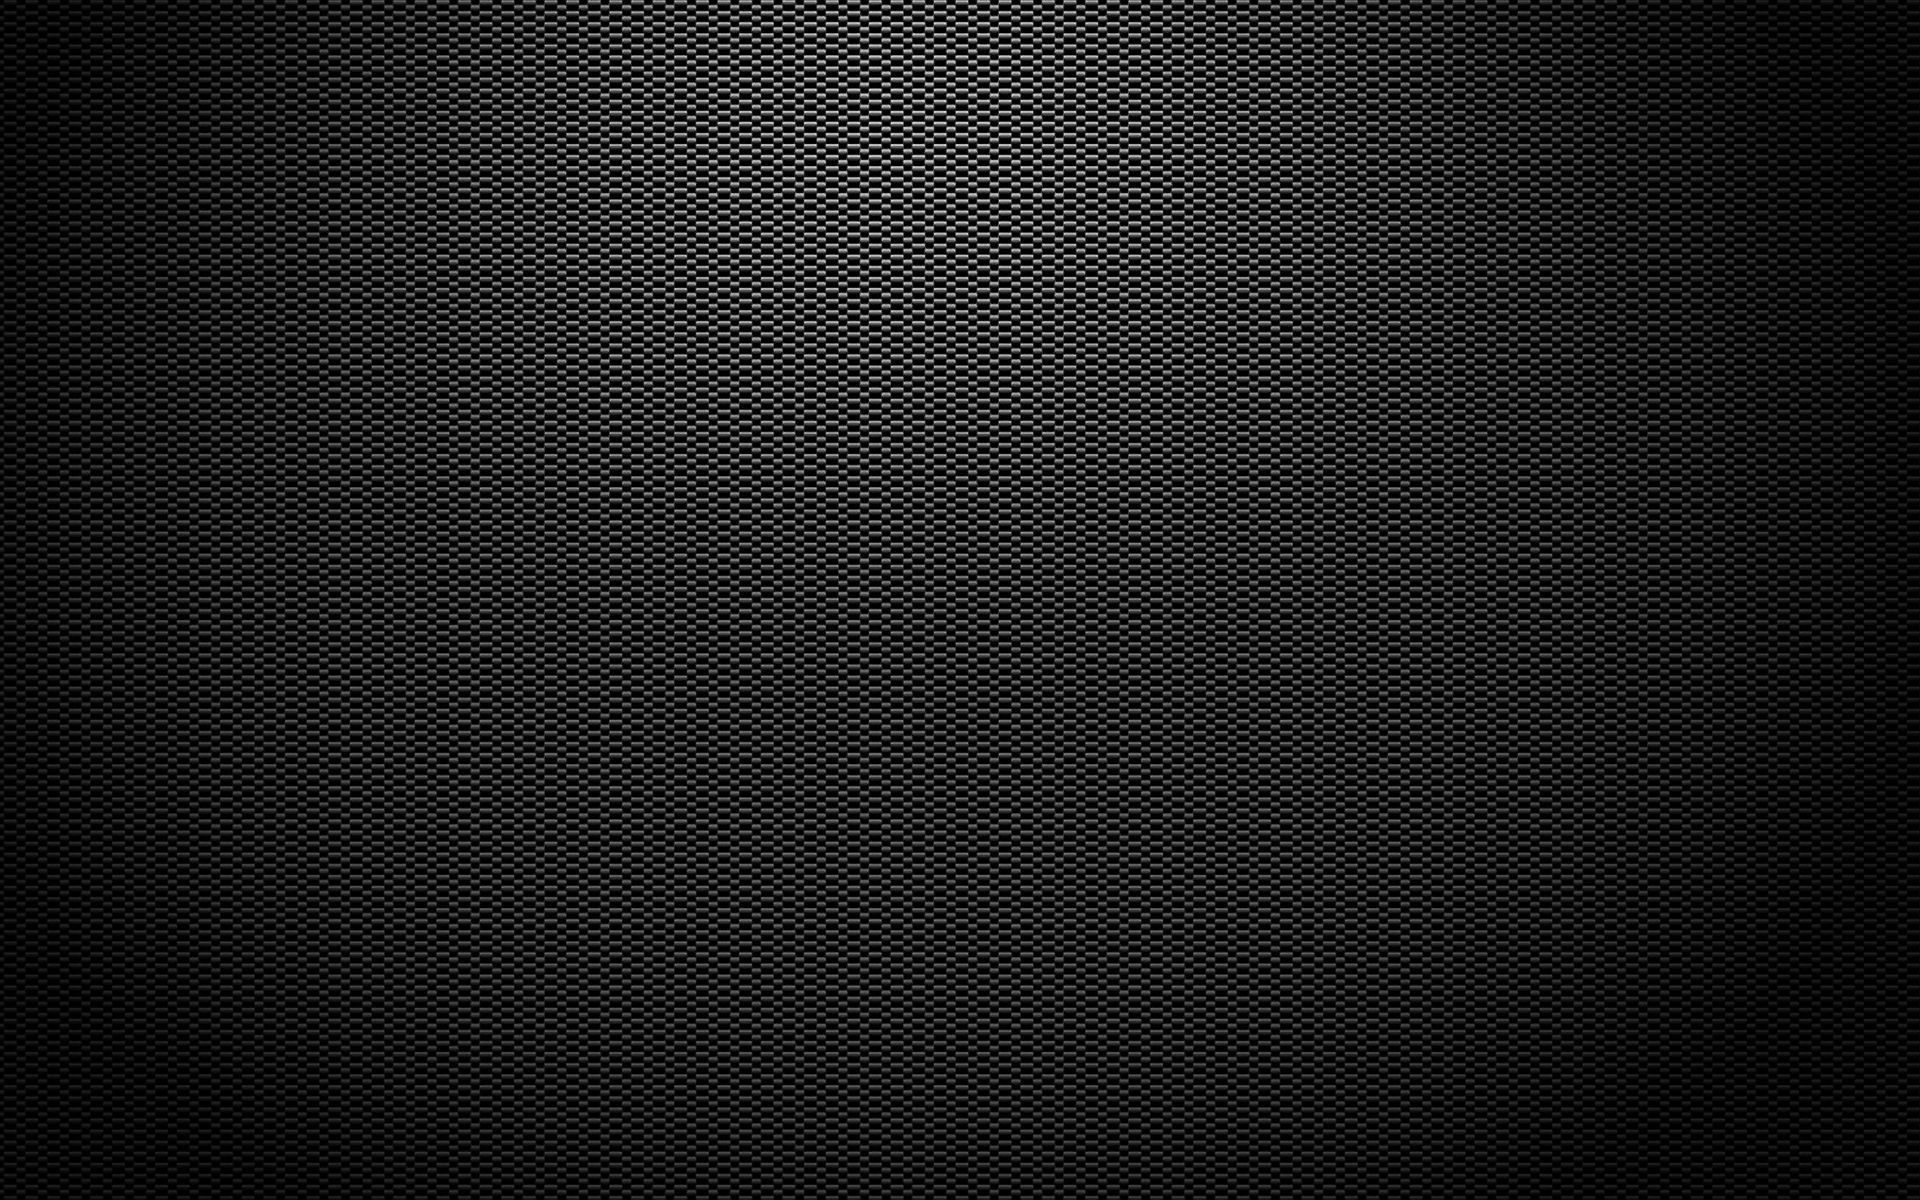 Plain Black Iphone Wallpaper Carbon Fiber 1920 Projects To Try Pinterest